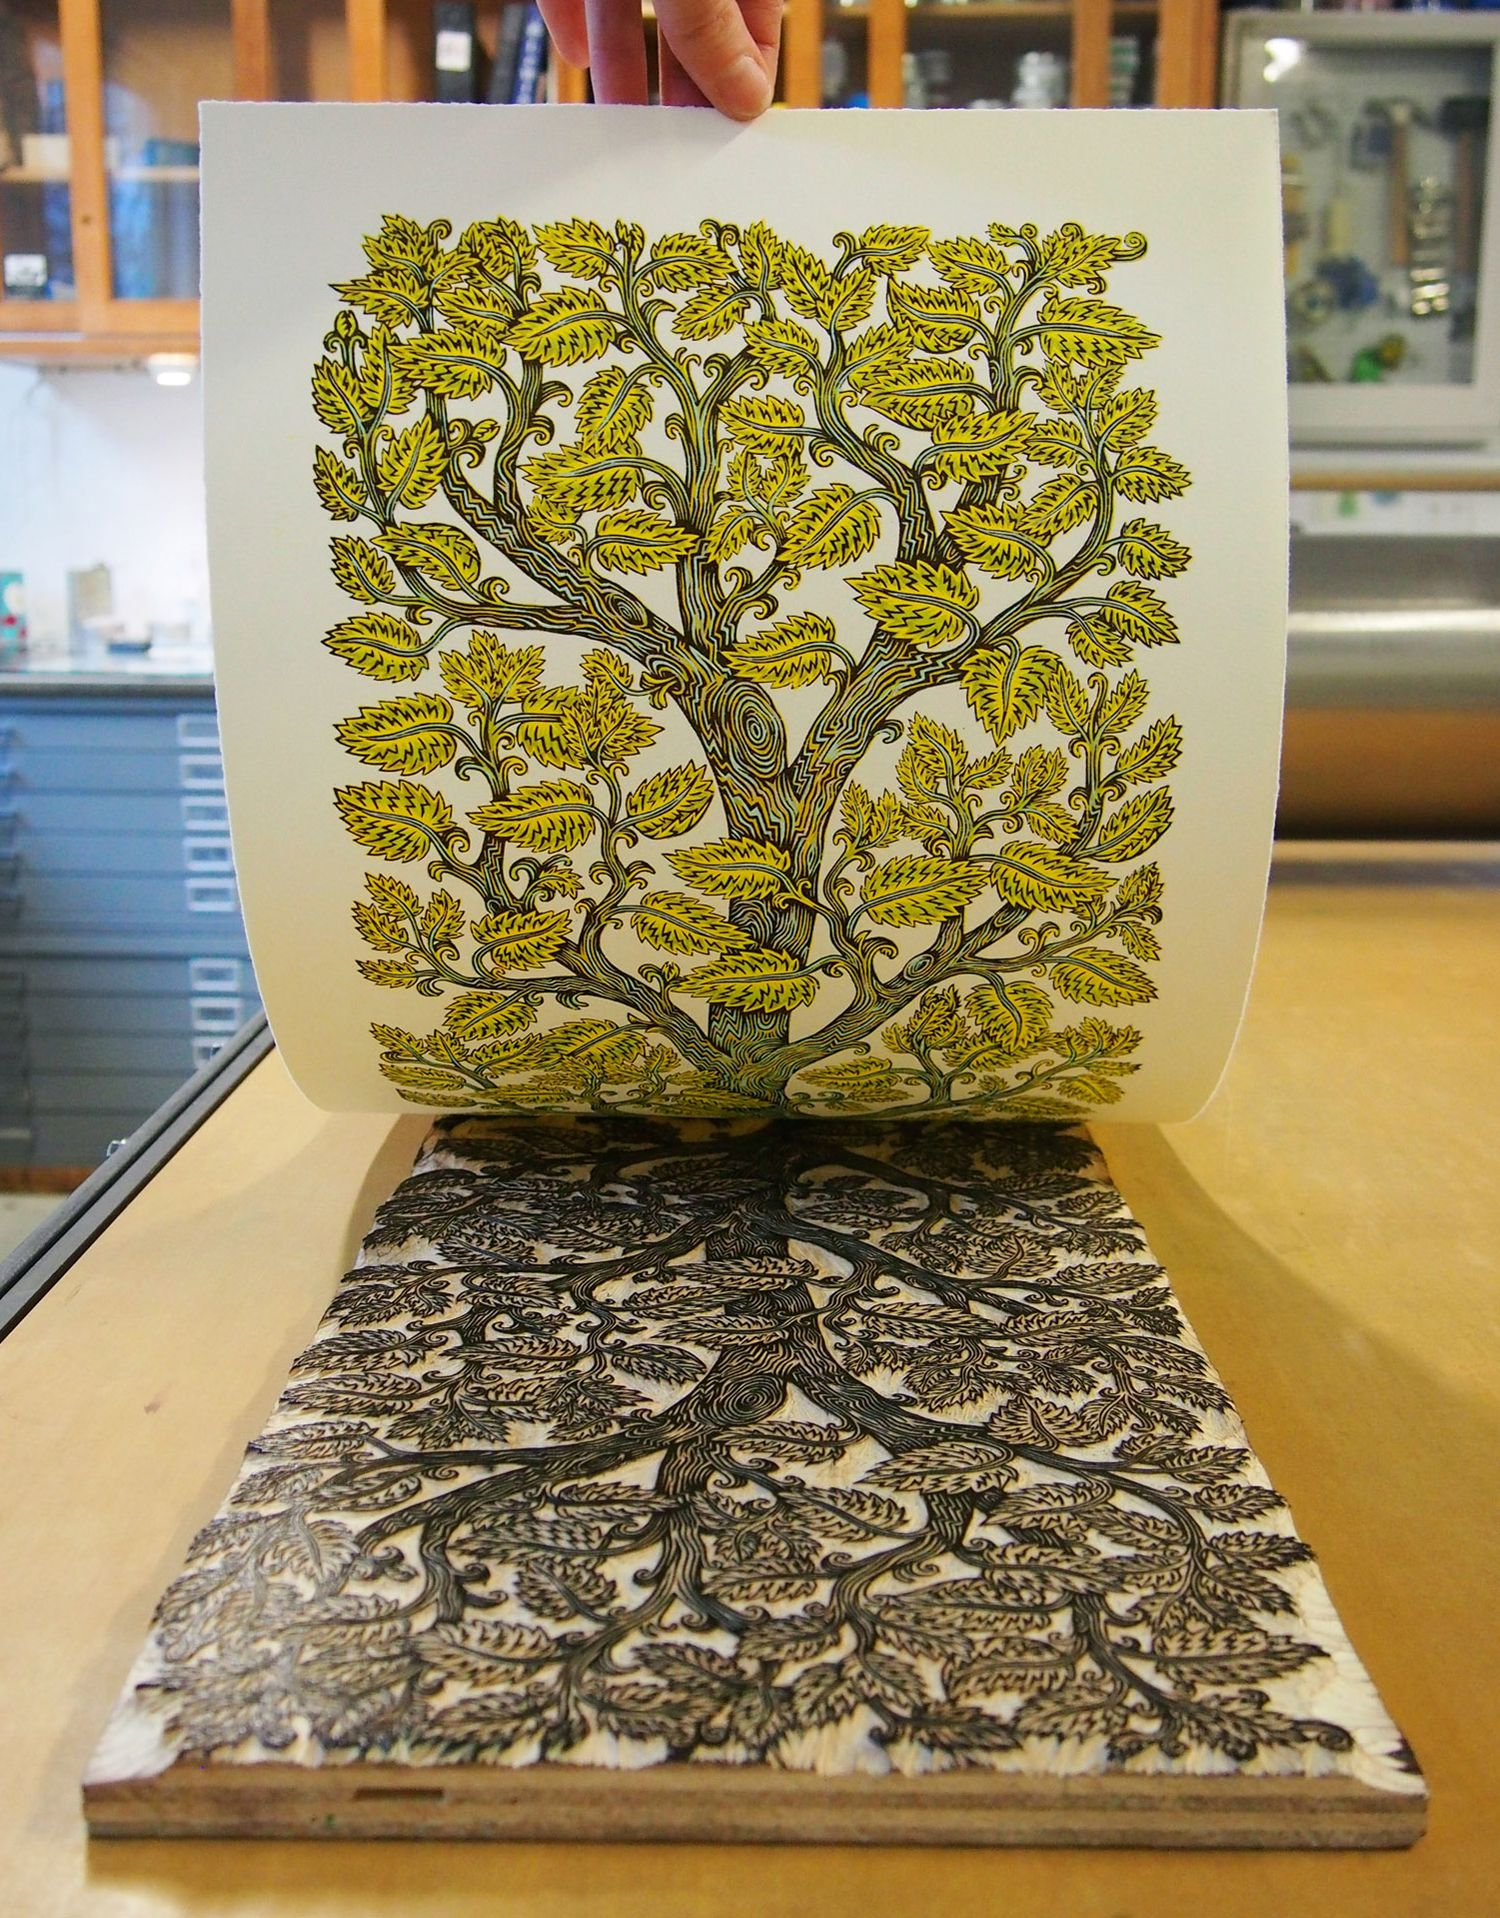 A Tall Leafy Tree Grows In Tugboat Printshops New 4 Color Wood Block Print